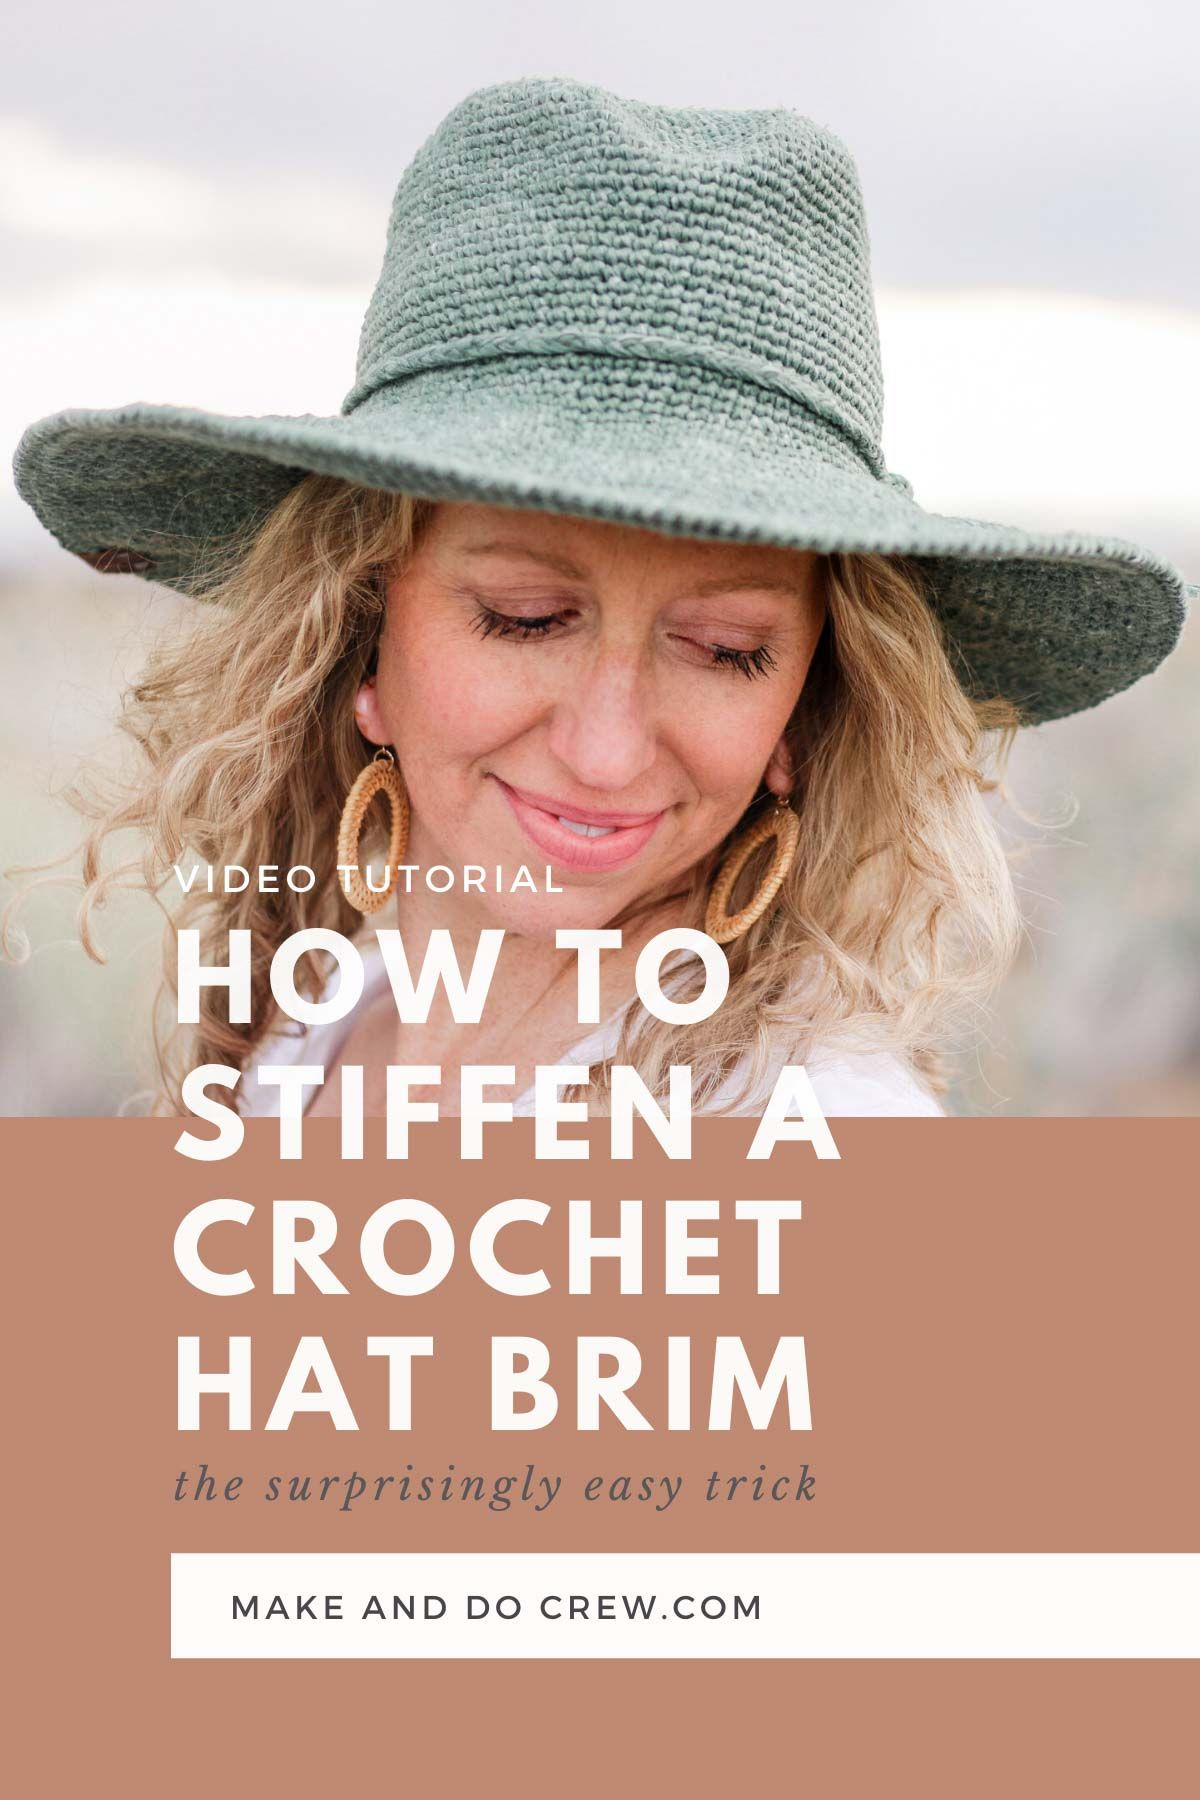 With this simple, inexpensive trick, you'll learn how to stiffen the brim of any crochet hat without using starch. When you add a wire to your sun hat like this, it remains flexible + packable! Video tutorial with free pattern from Make & Do Crew.  #makeanddocrew #crochetsunhat #crochetvideotutorial